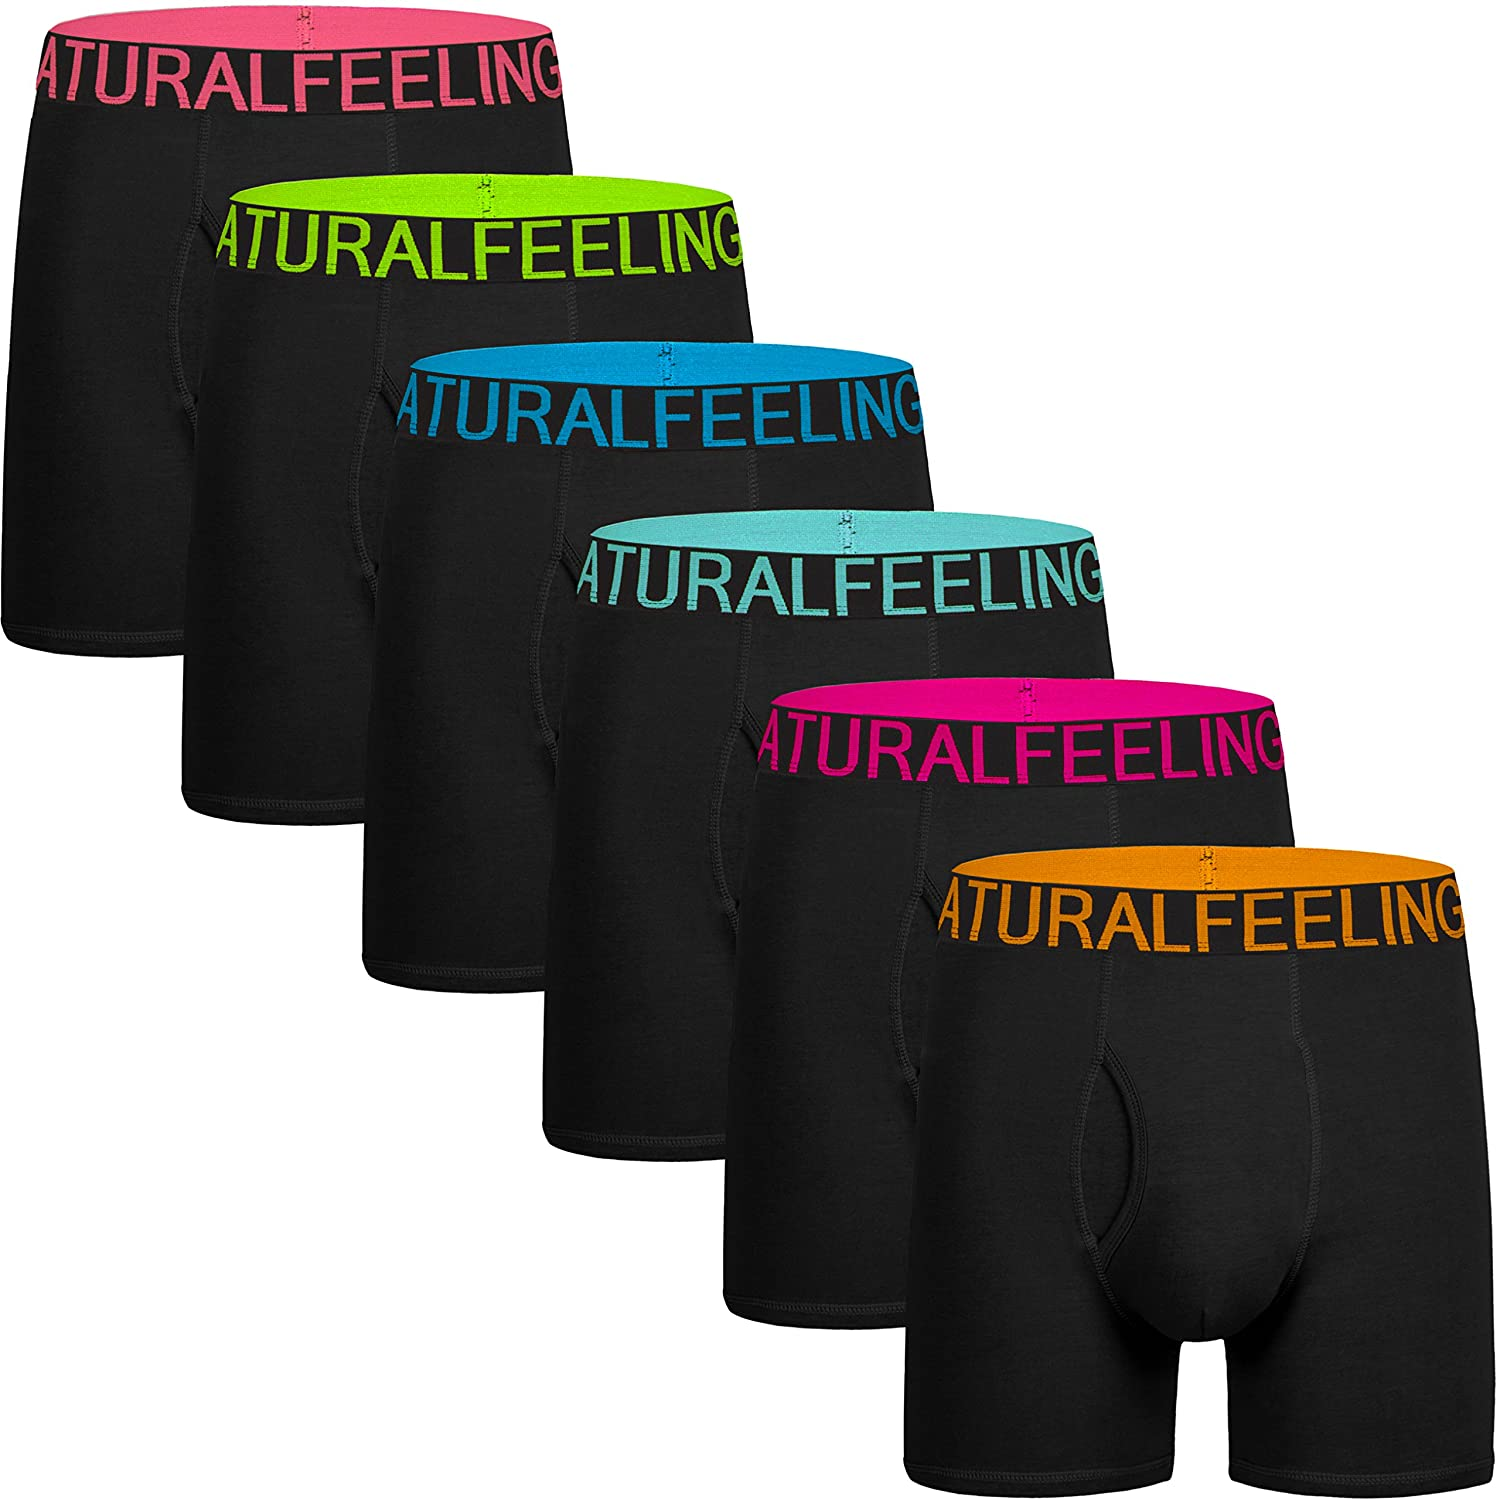 5257be41822e ... boxer briefs; Natural cotton is irresistible to touch, lightweight and  comfortable; 5% Spandex makes men's boxer briefs strecheier then pure cotto